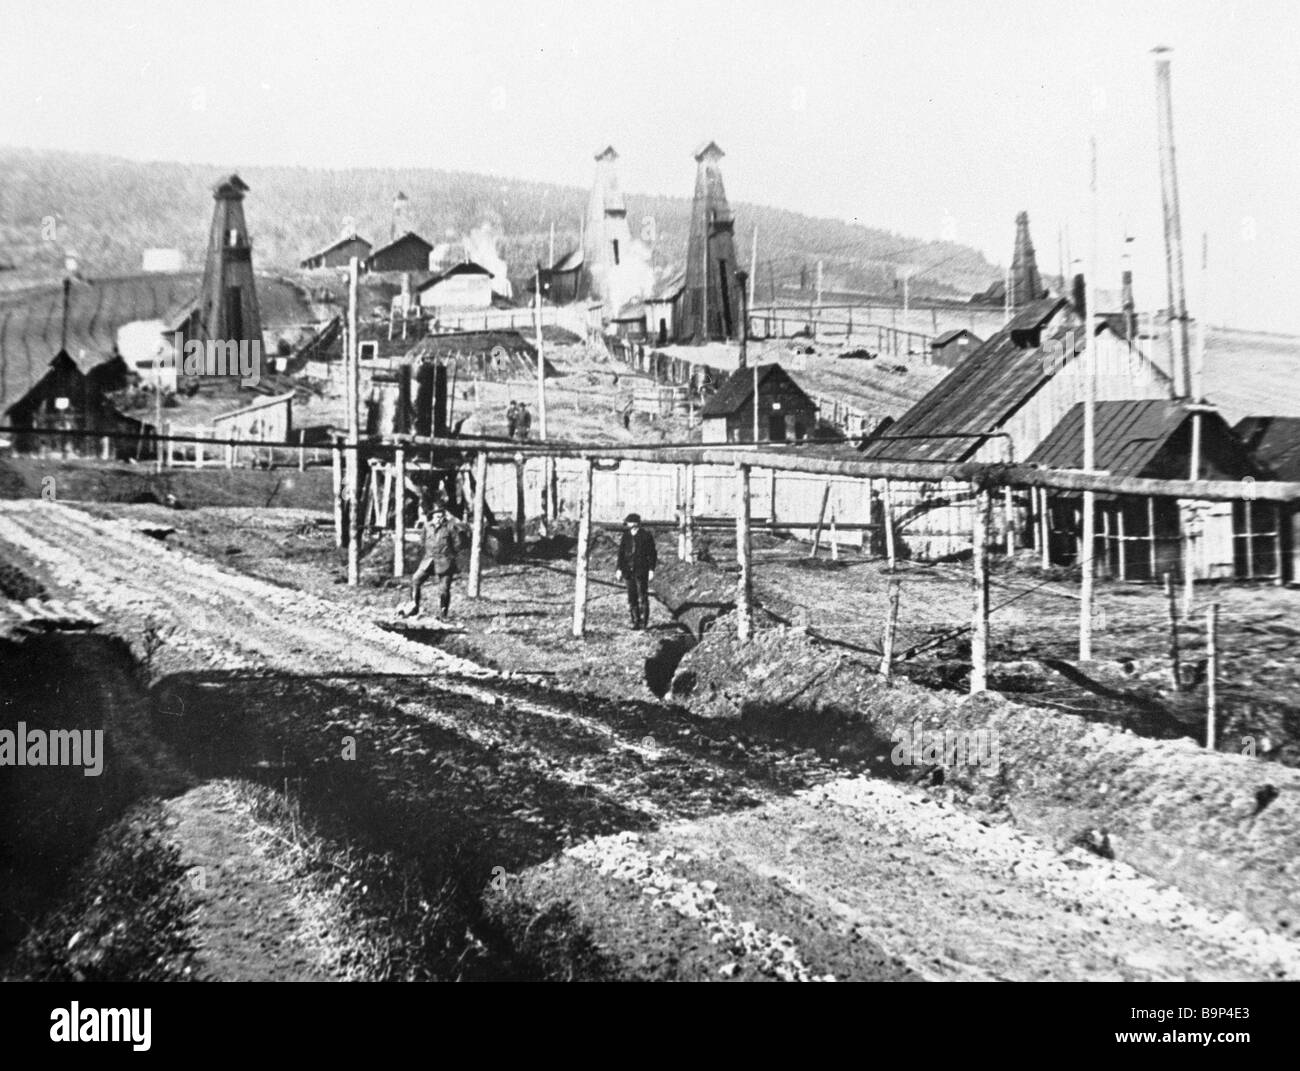 View of the Ukrainian Borislav city in the early 20th century - Stock Image